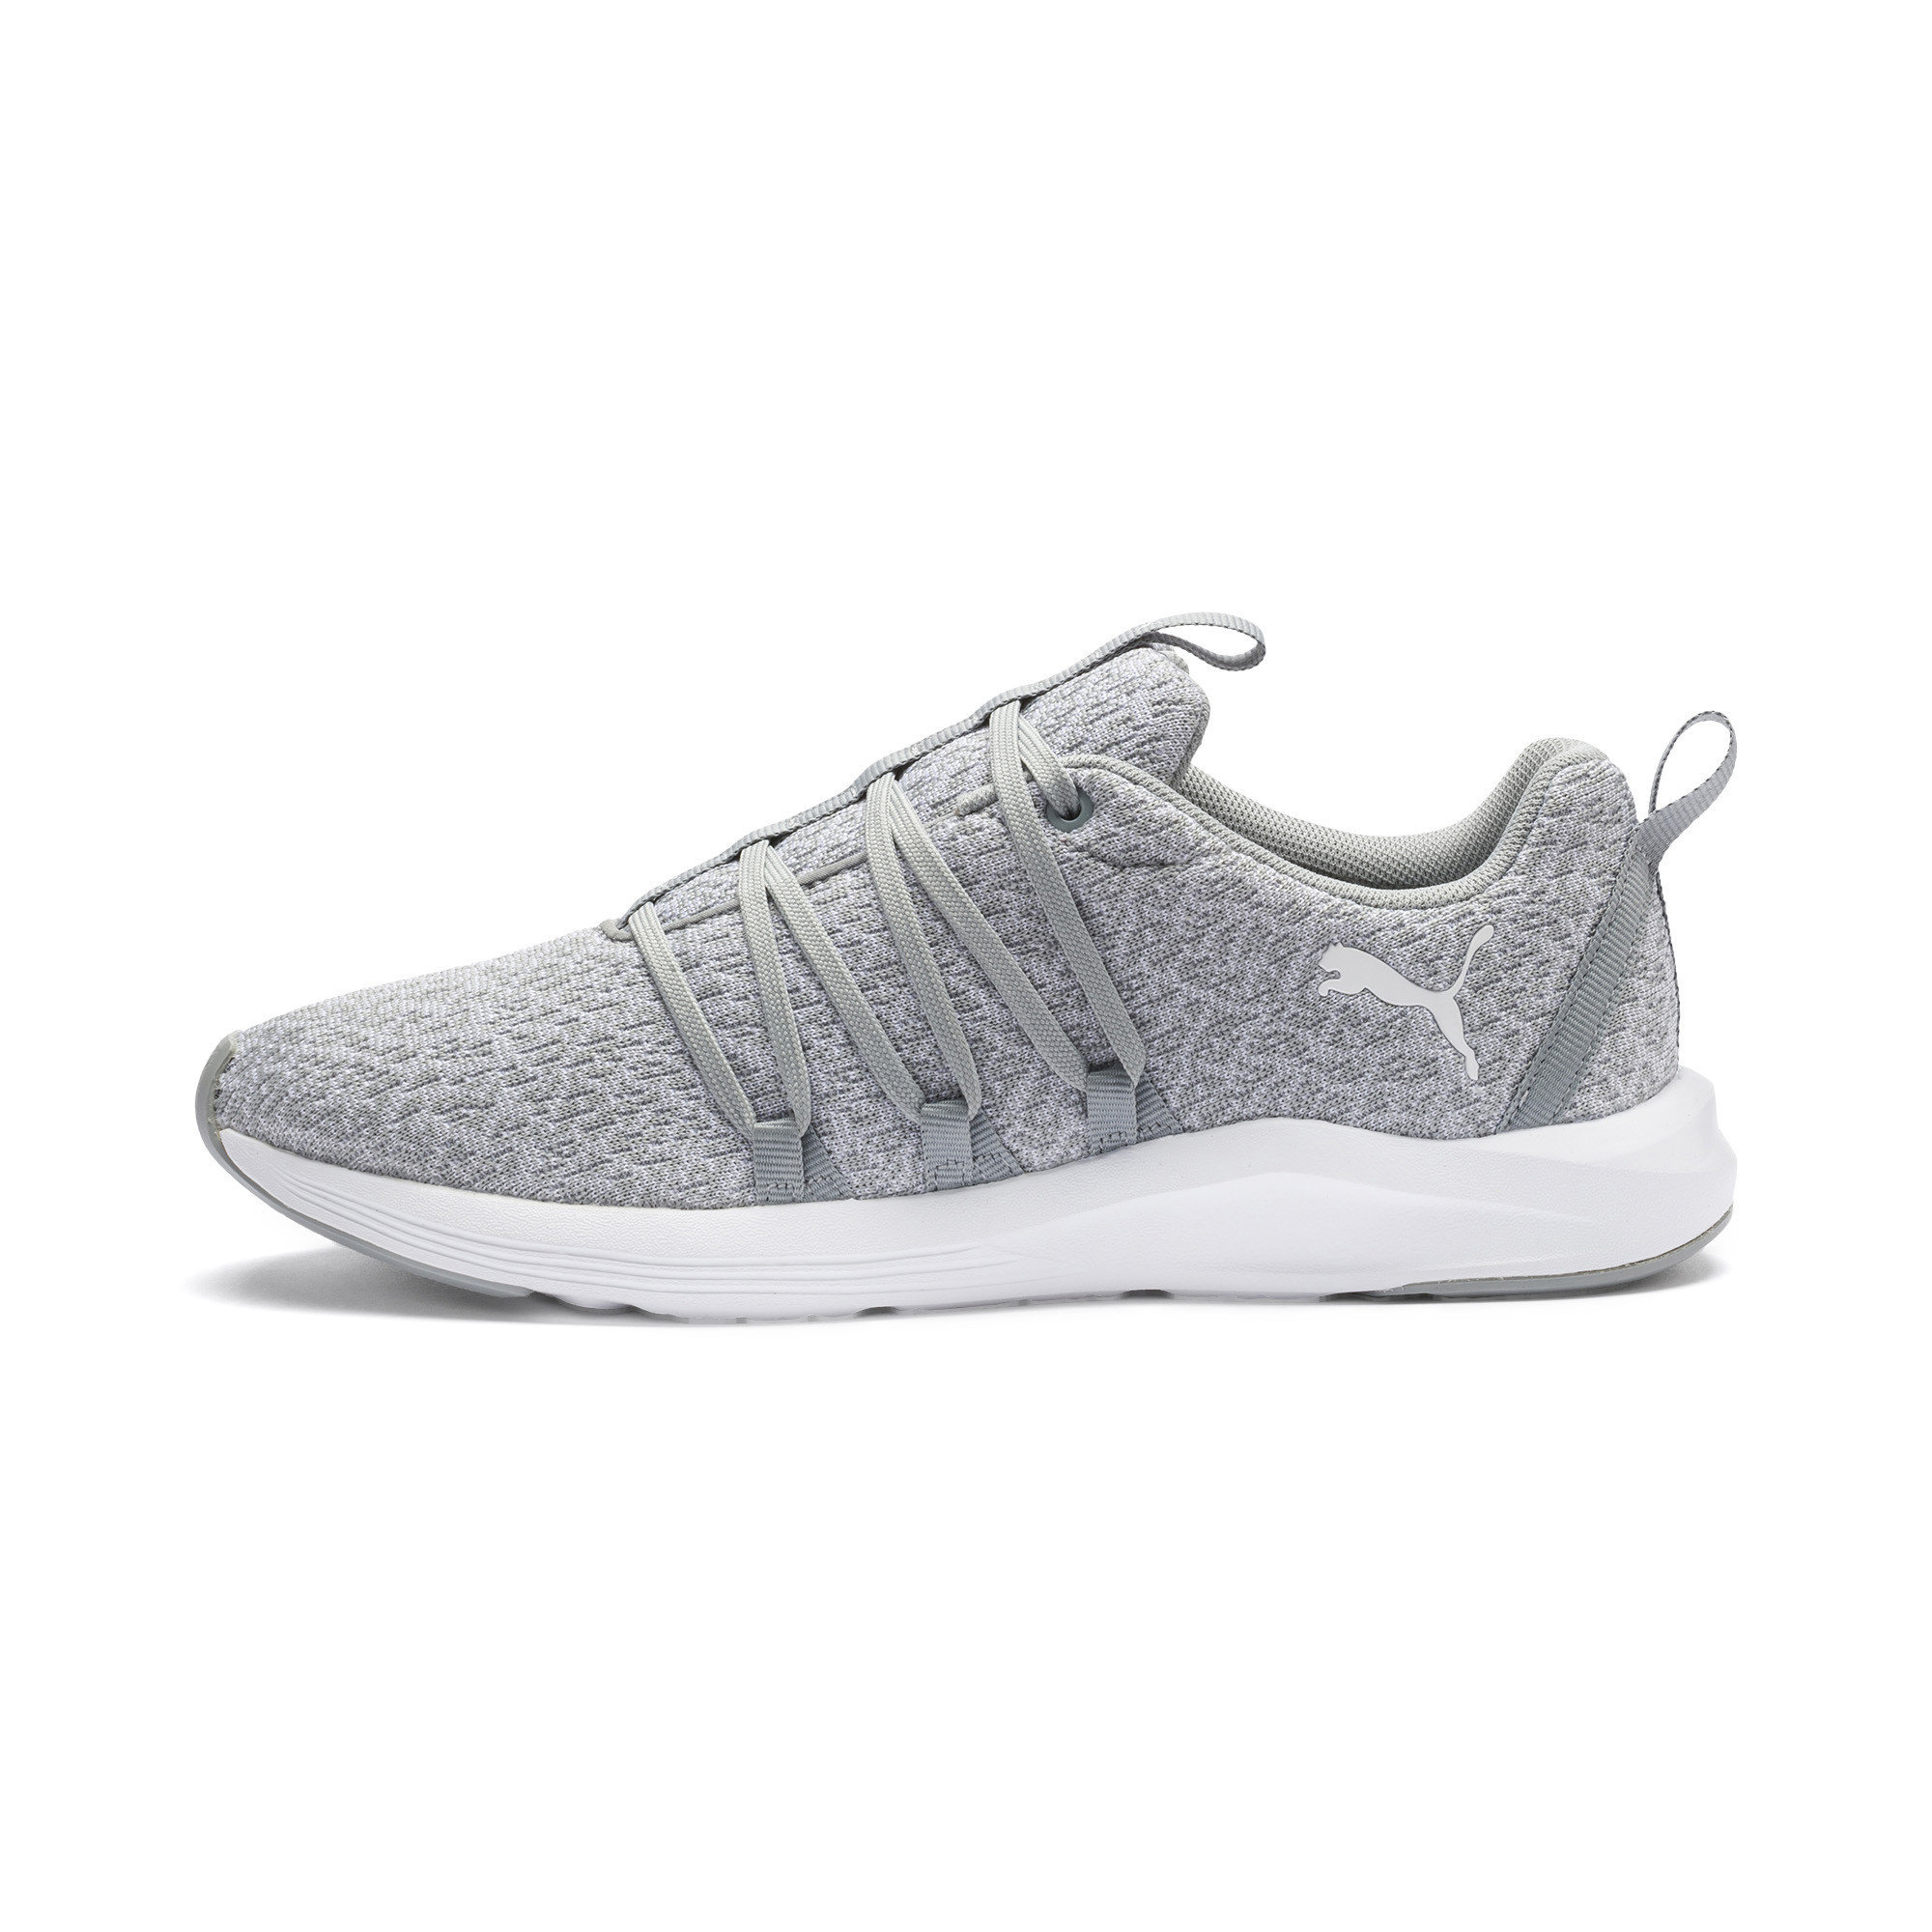 PUMA-Prowl-Alt-Knit-Women-039-s-Training-Shoes-Women-Shoe-Training thumbnail 10